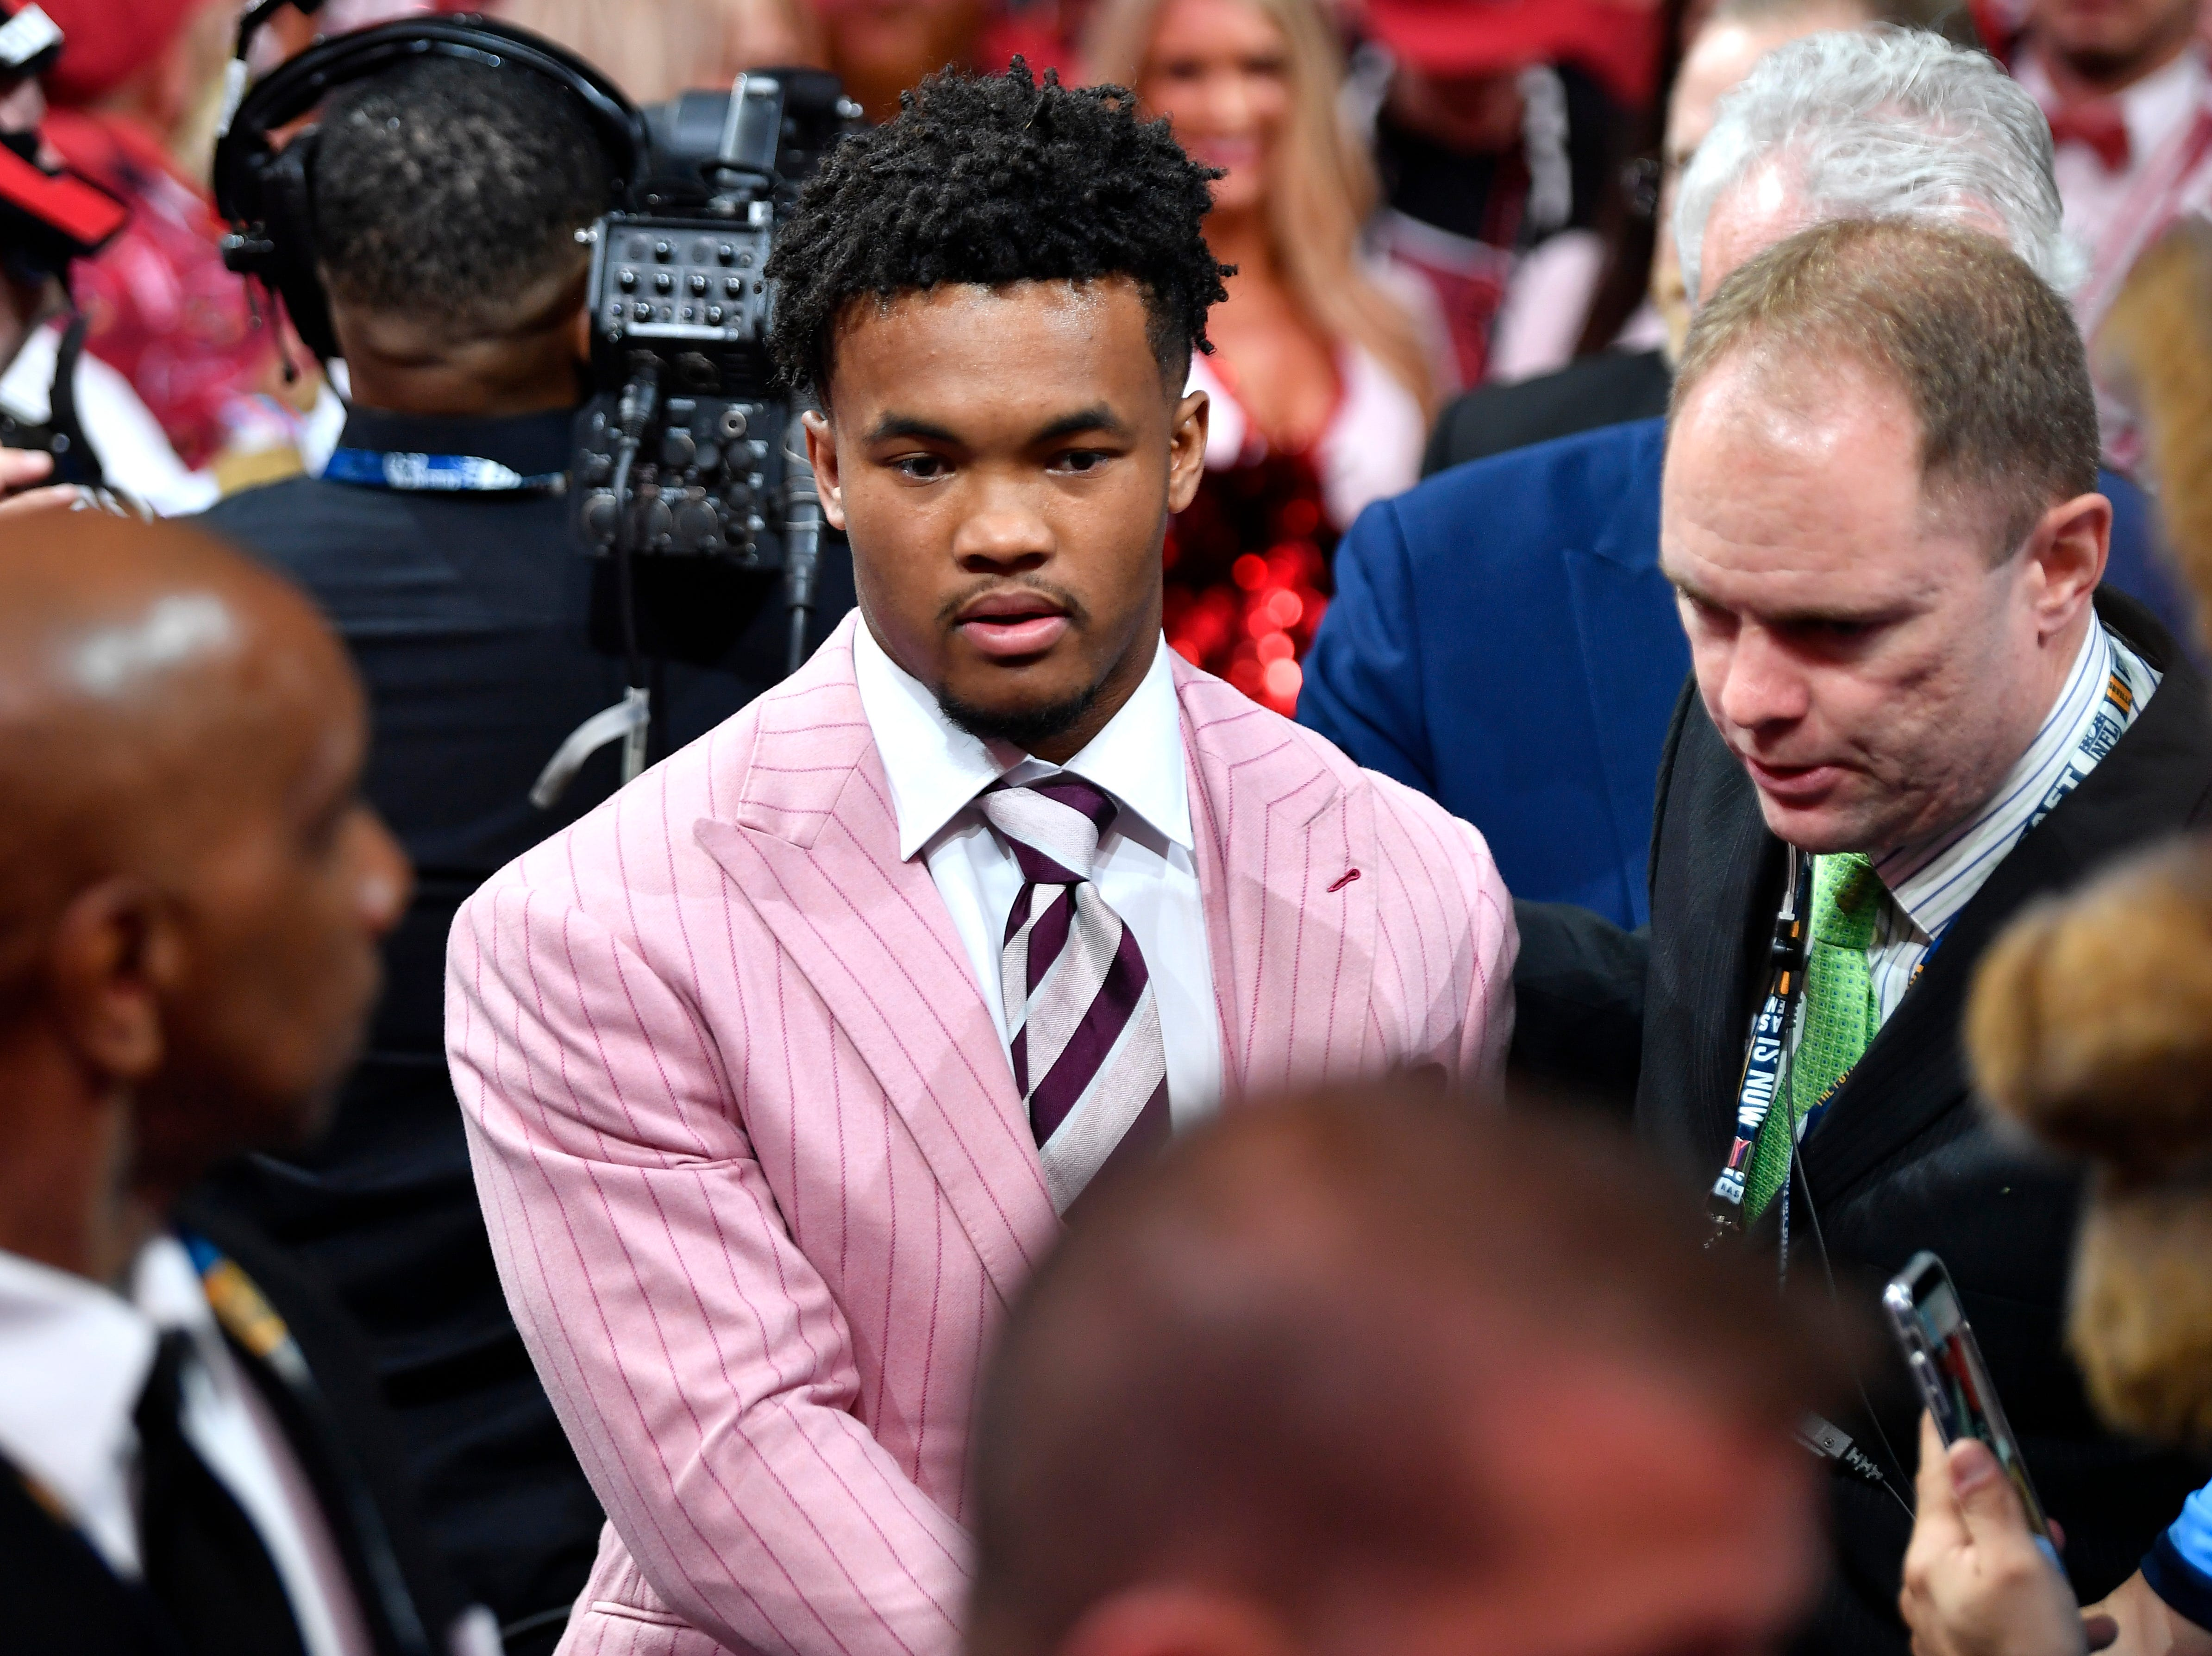 Kyler Murray is congratulated after being picked first by the Arizona Cardinals during the first round of the NFL Draft Thursday, April 25, 2019, in Nashville, Tenn.